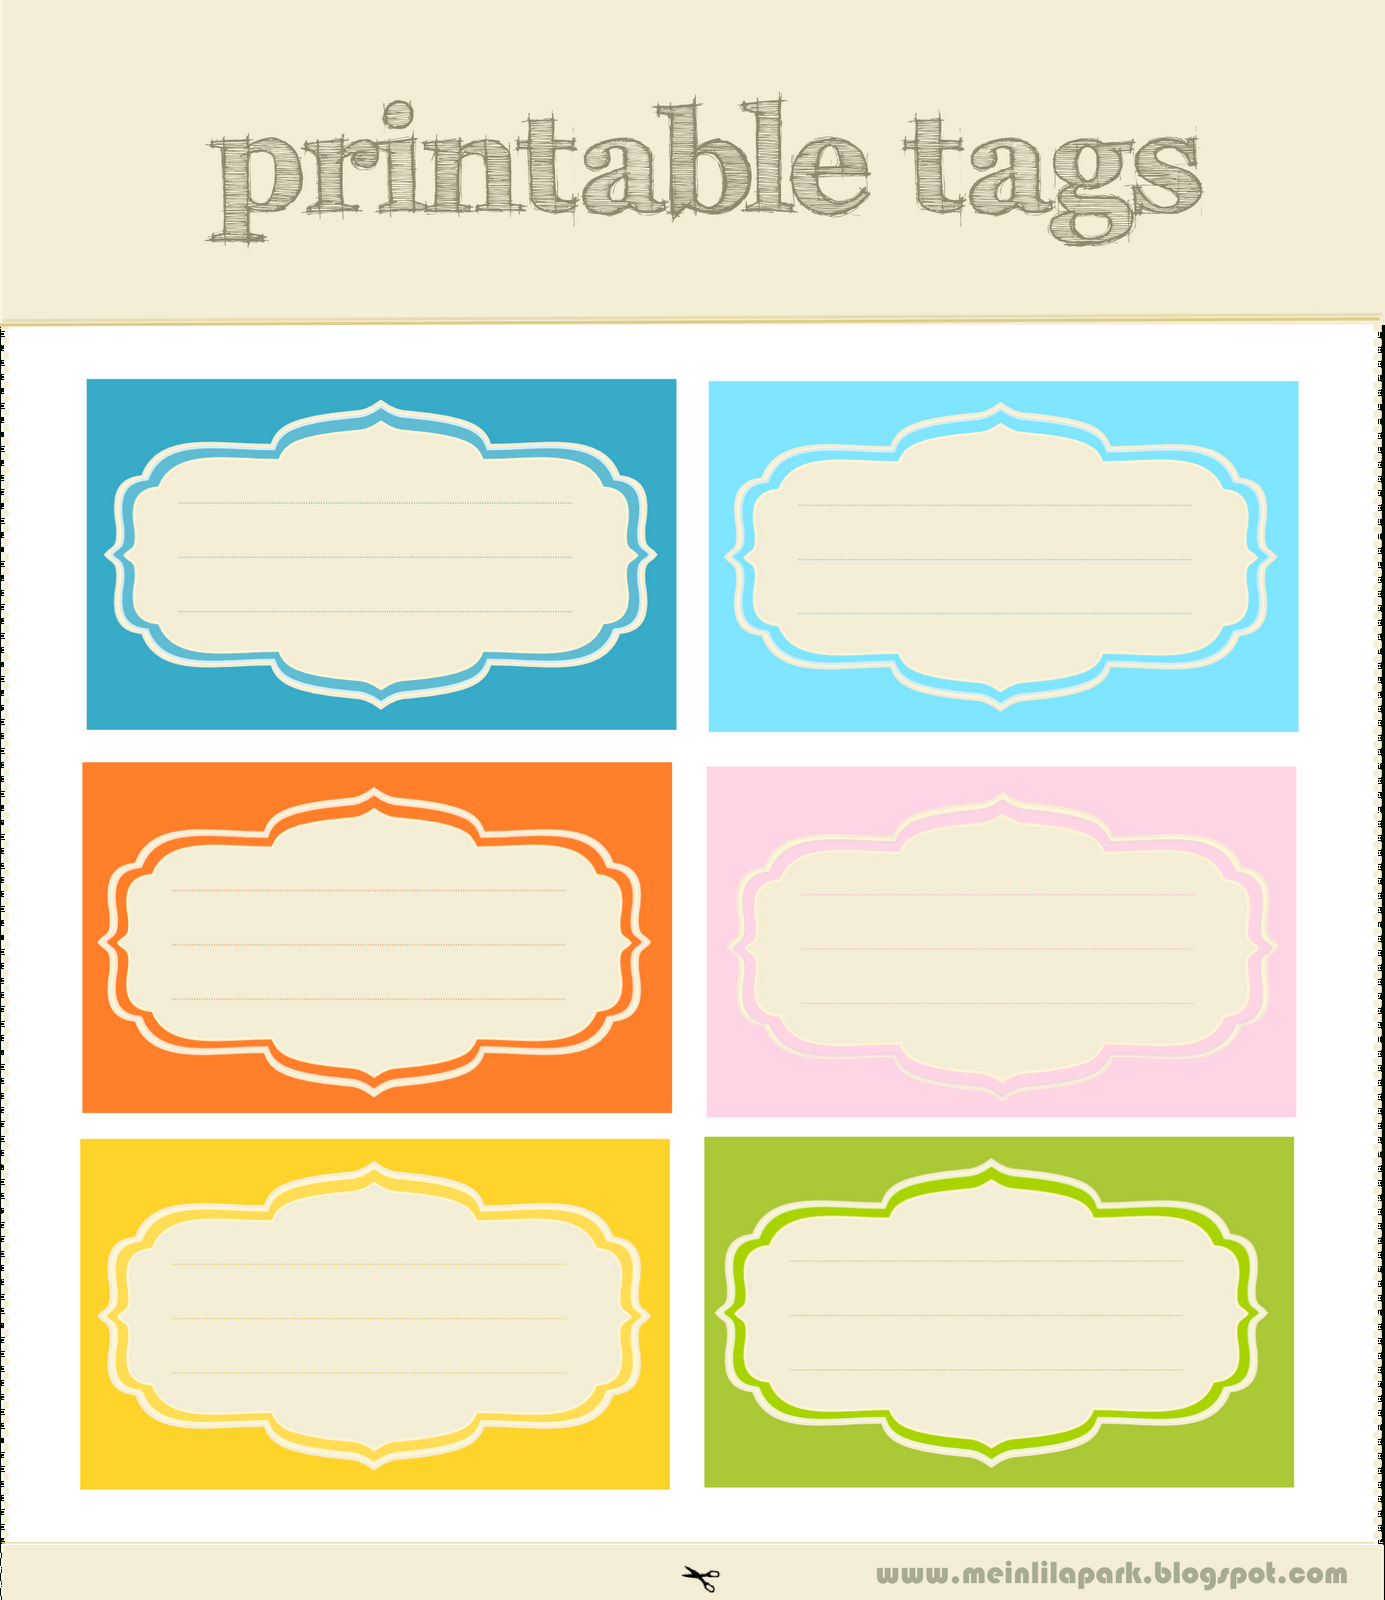 Free Printable Scrapbooking Tags And Digital Journaling Tags - Free Printable Tags